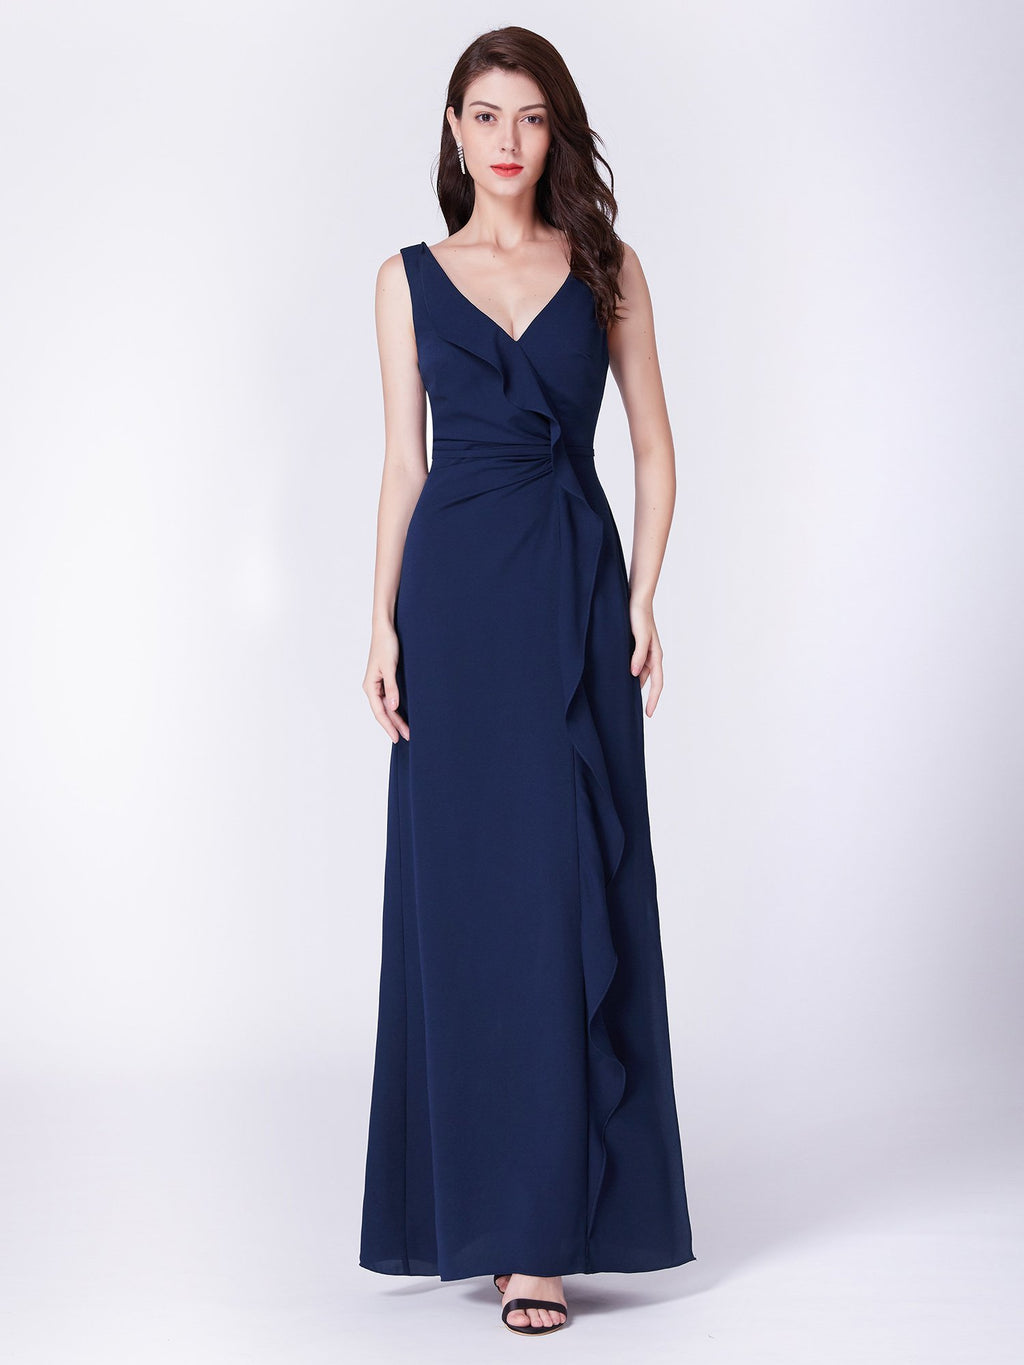 Ruffles Romantic Long Dress Navy Blue